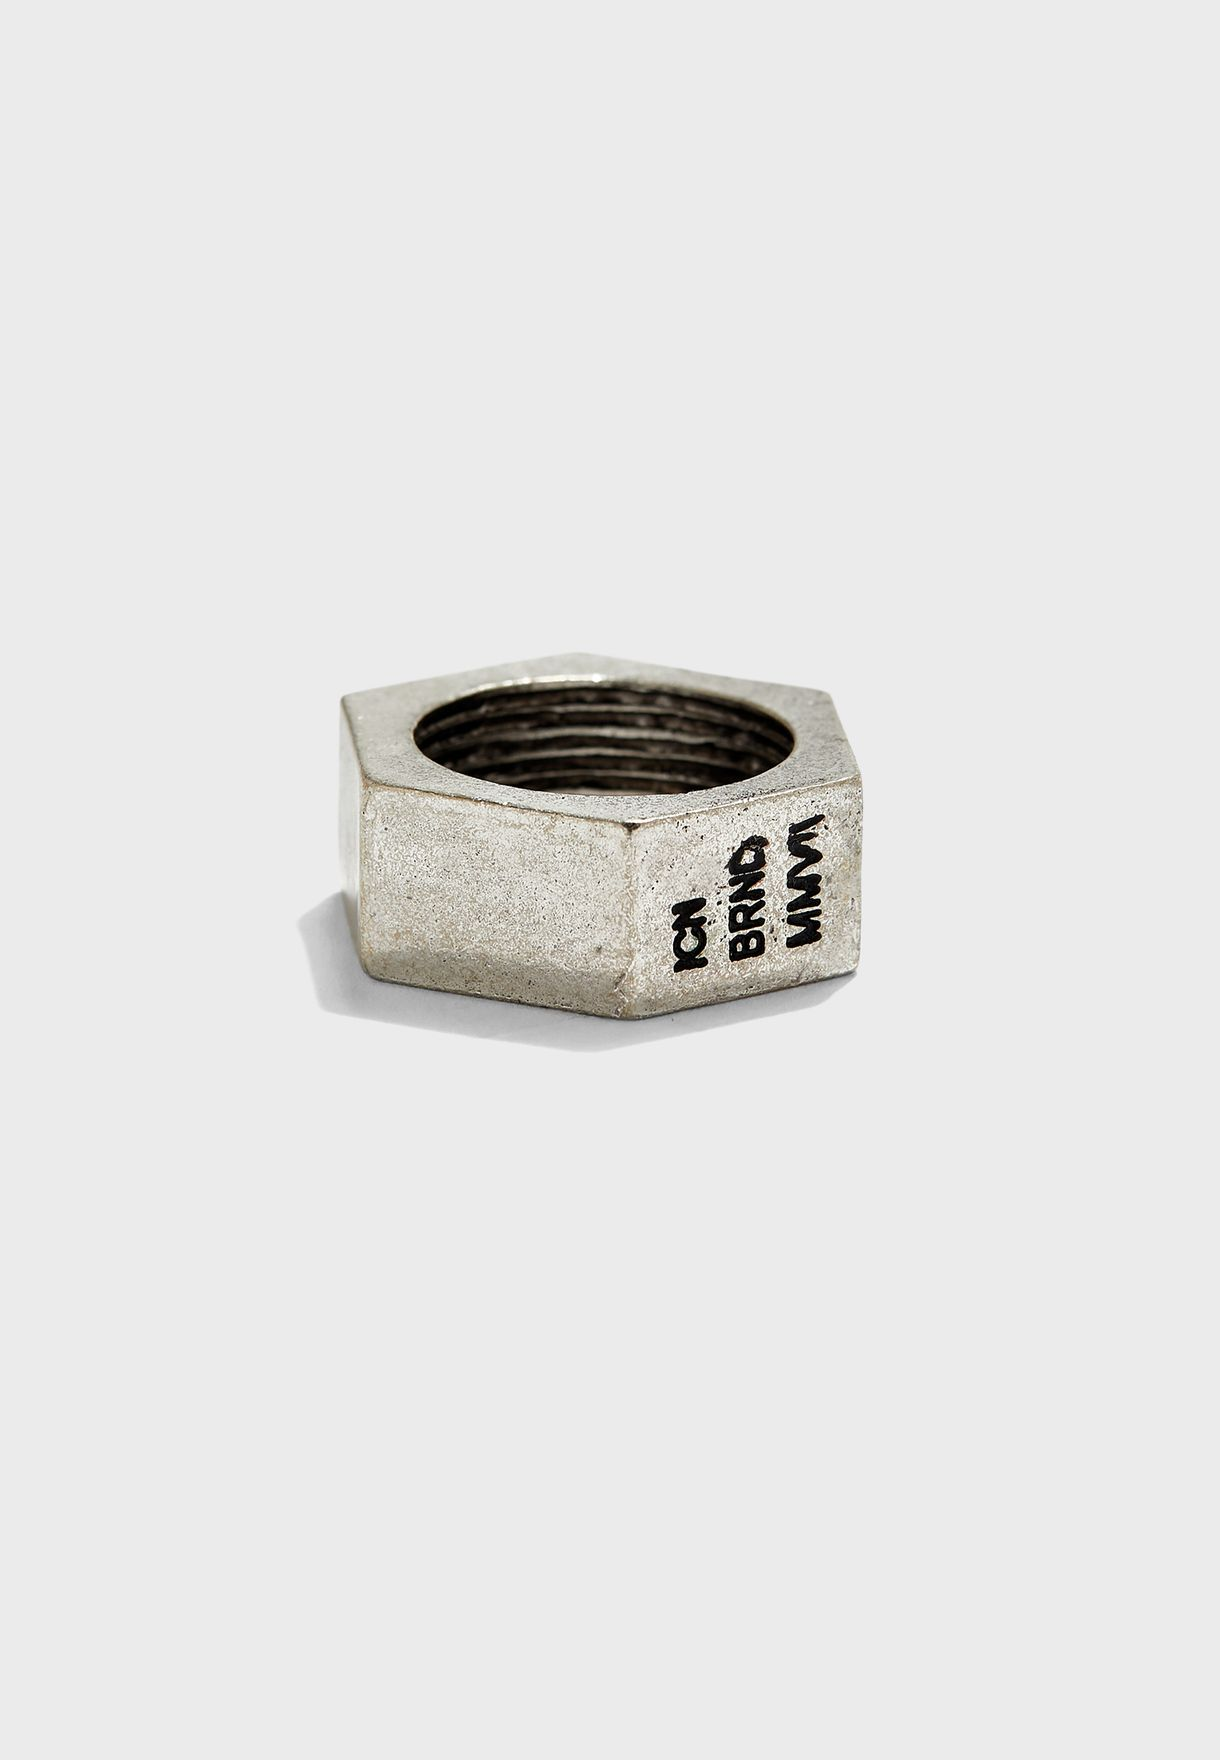 Nut Design Band Ring